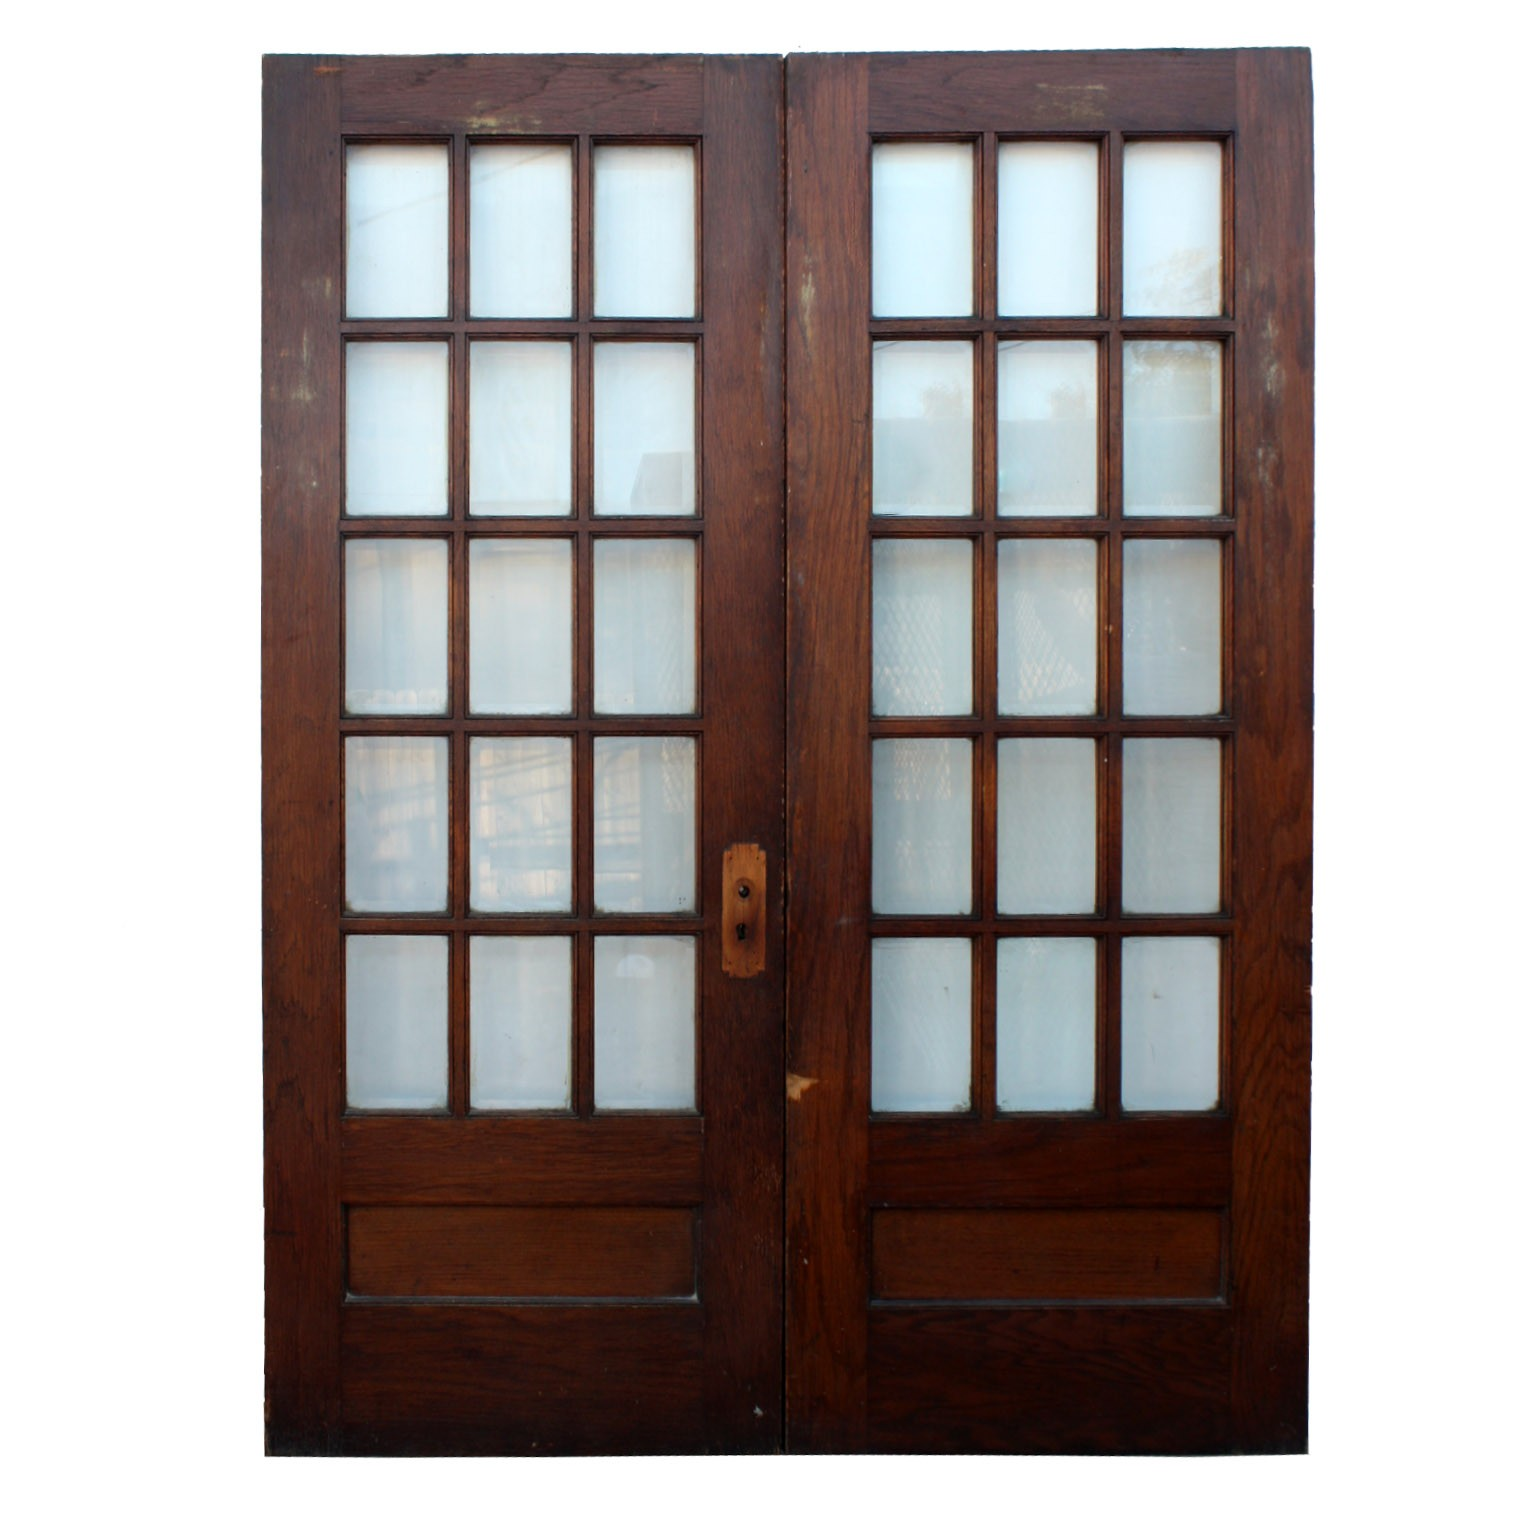 Pair Of Salvaged 64 Divided Light French Doors With Beveled Glass